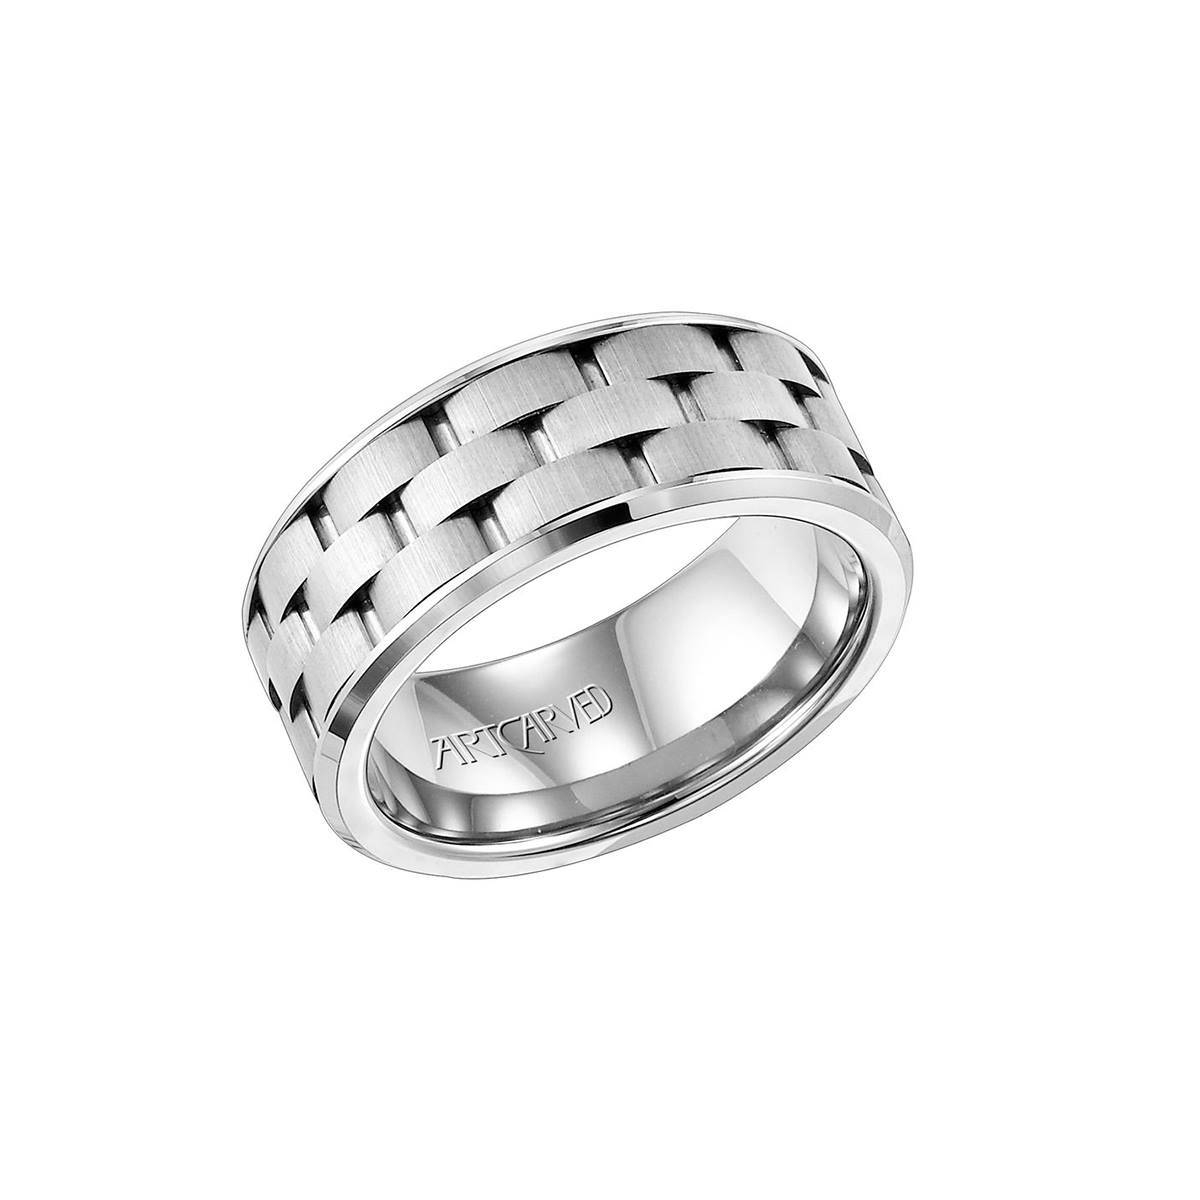 Artcarved – Men 's Wedding Bands Pertaining To Artcarved Men Wedding Bands (View 1 of 15)